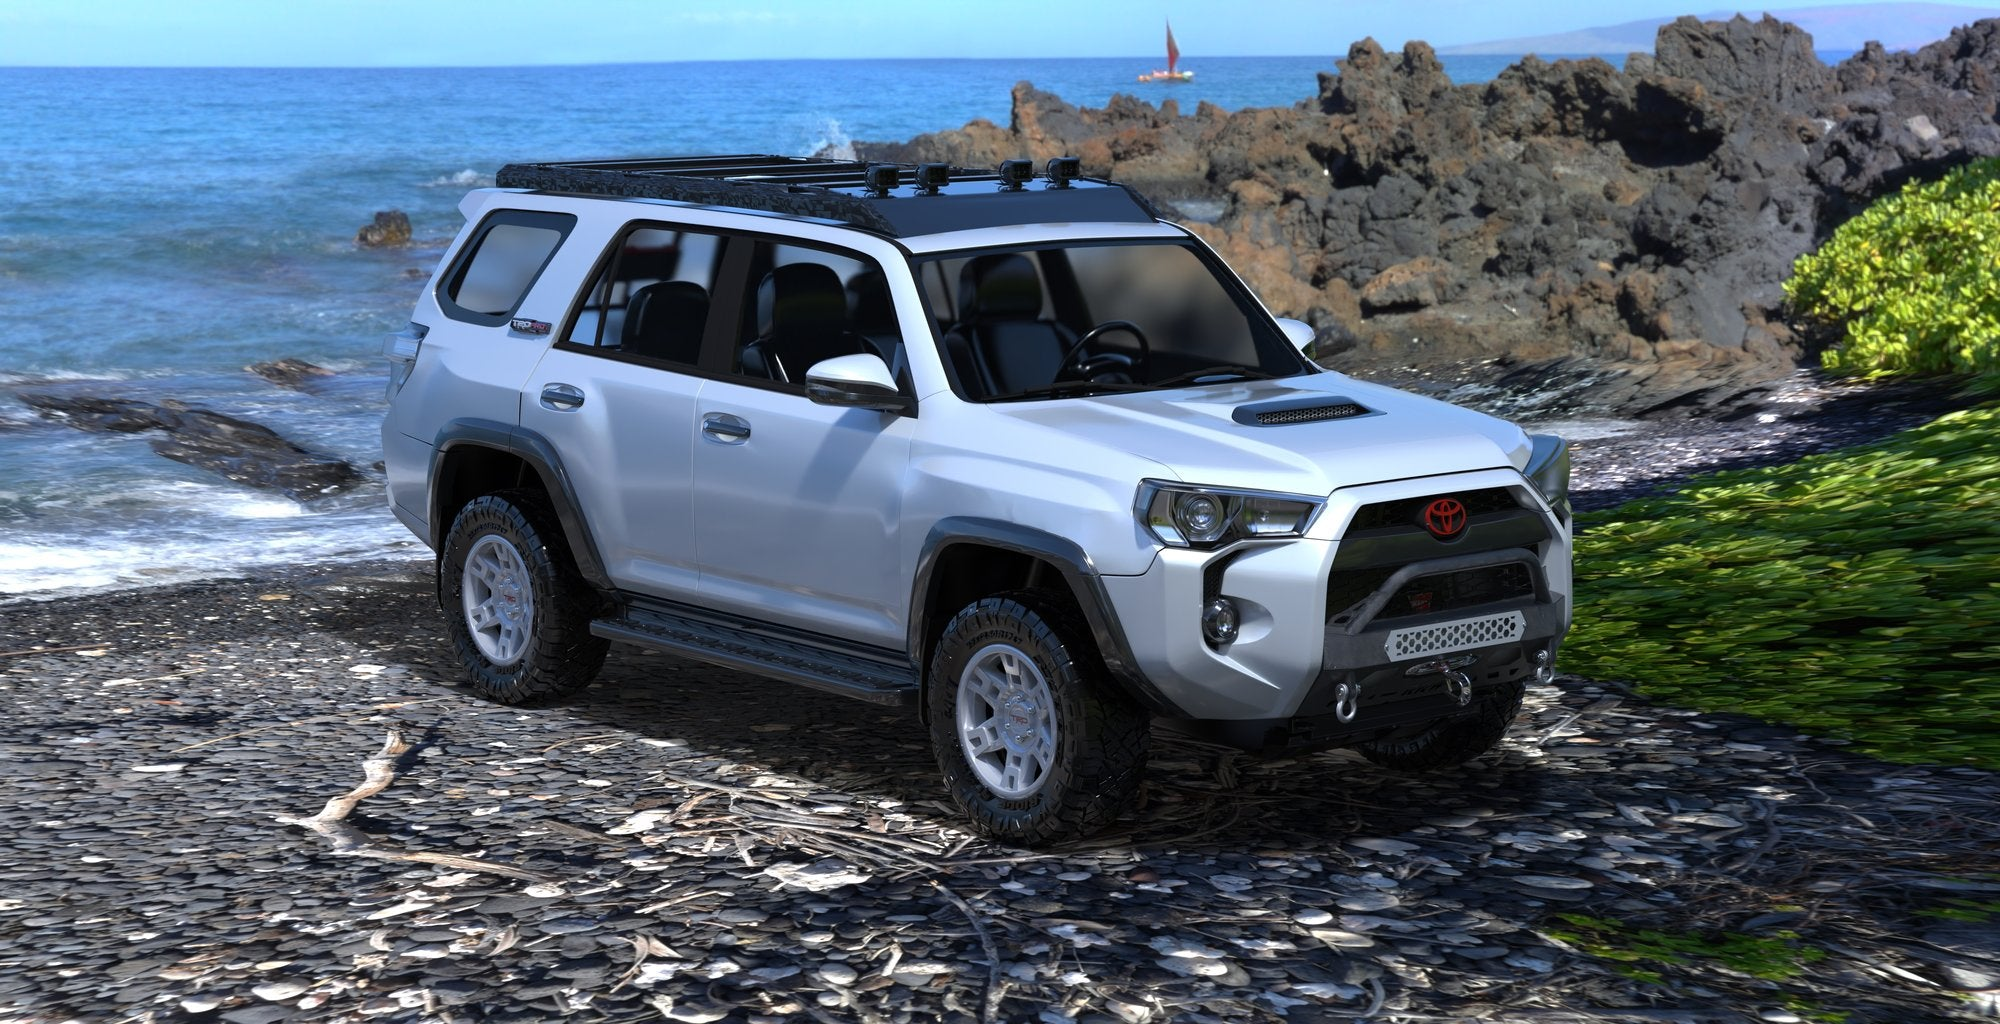 New stealth front bumper for the 2014+ Toyota 4Runner